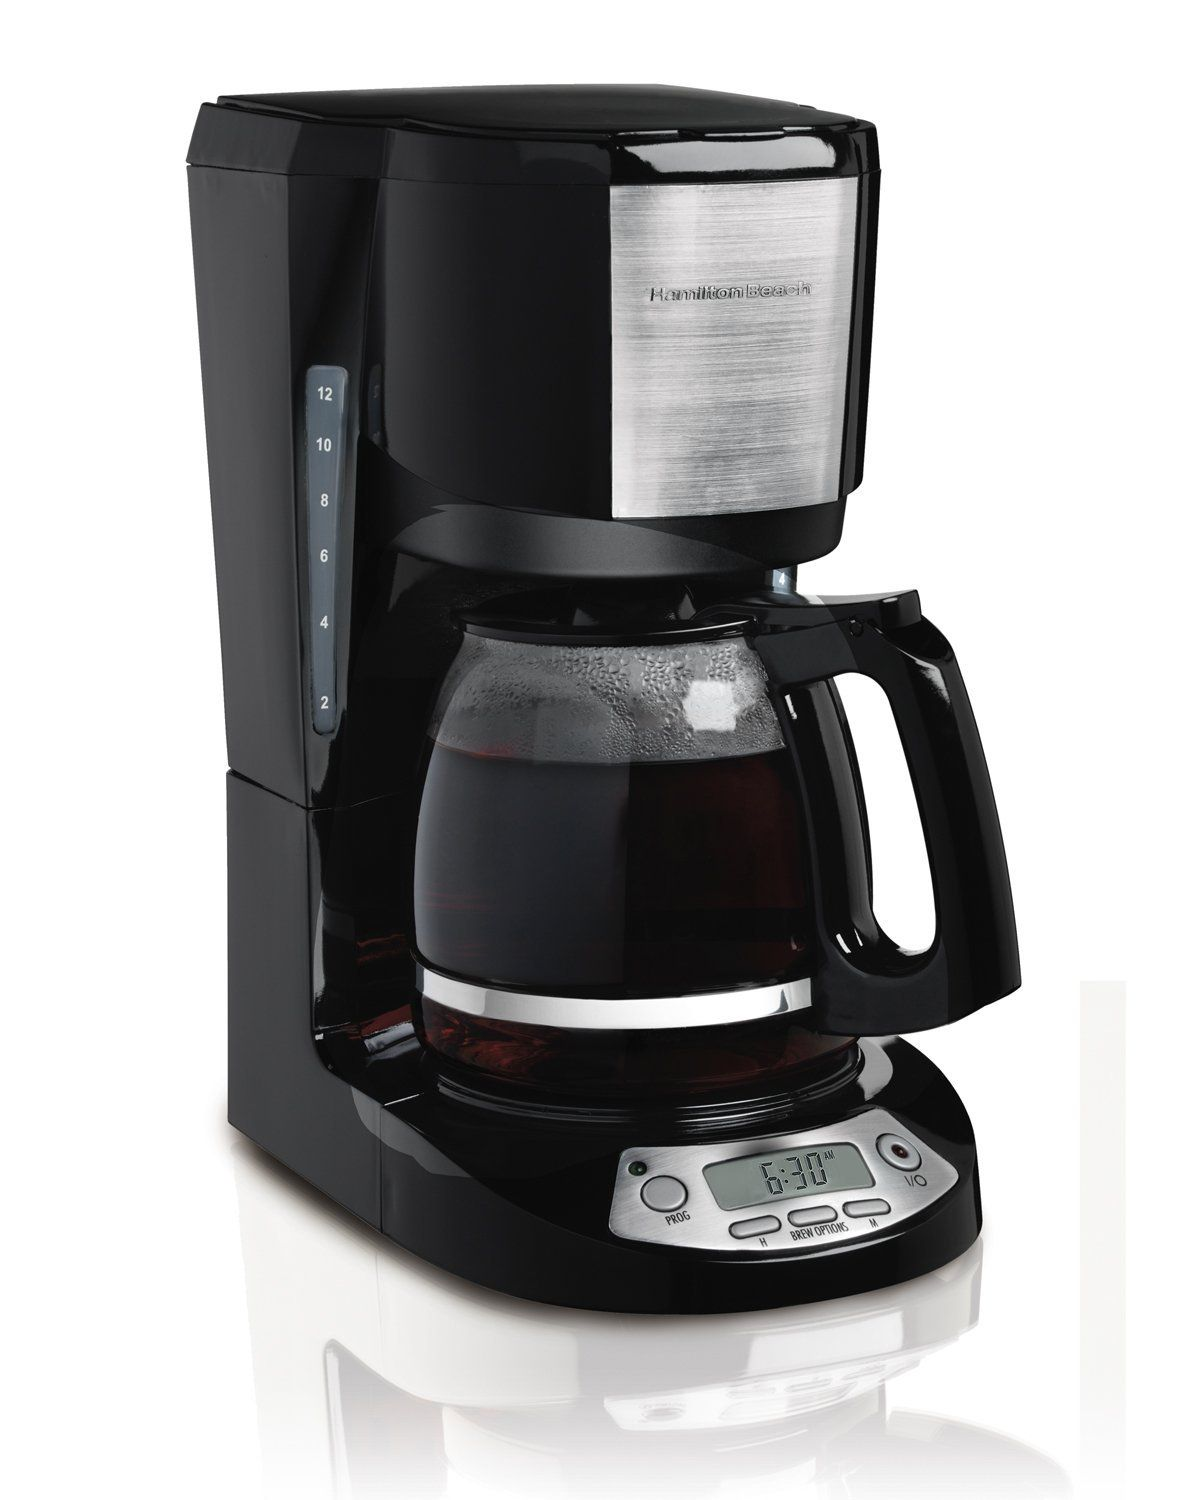 Hamilton Beach 49611 12 Cup Coffeemaker with Digital Clock